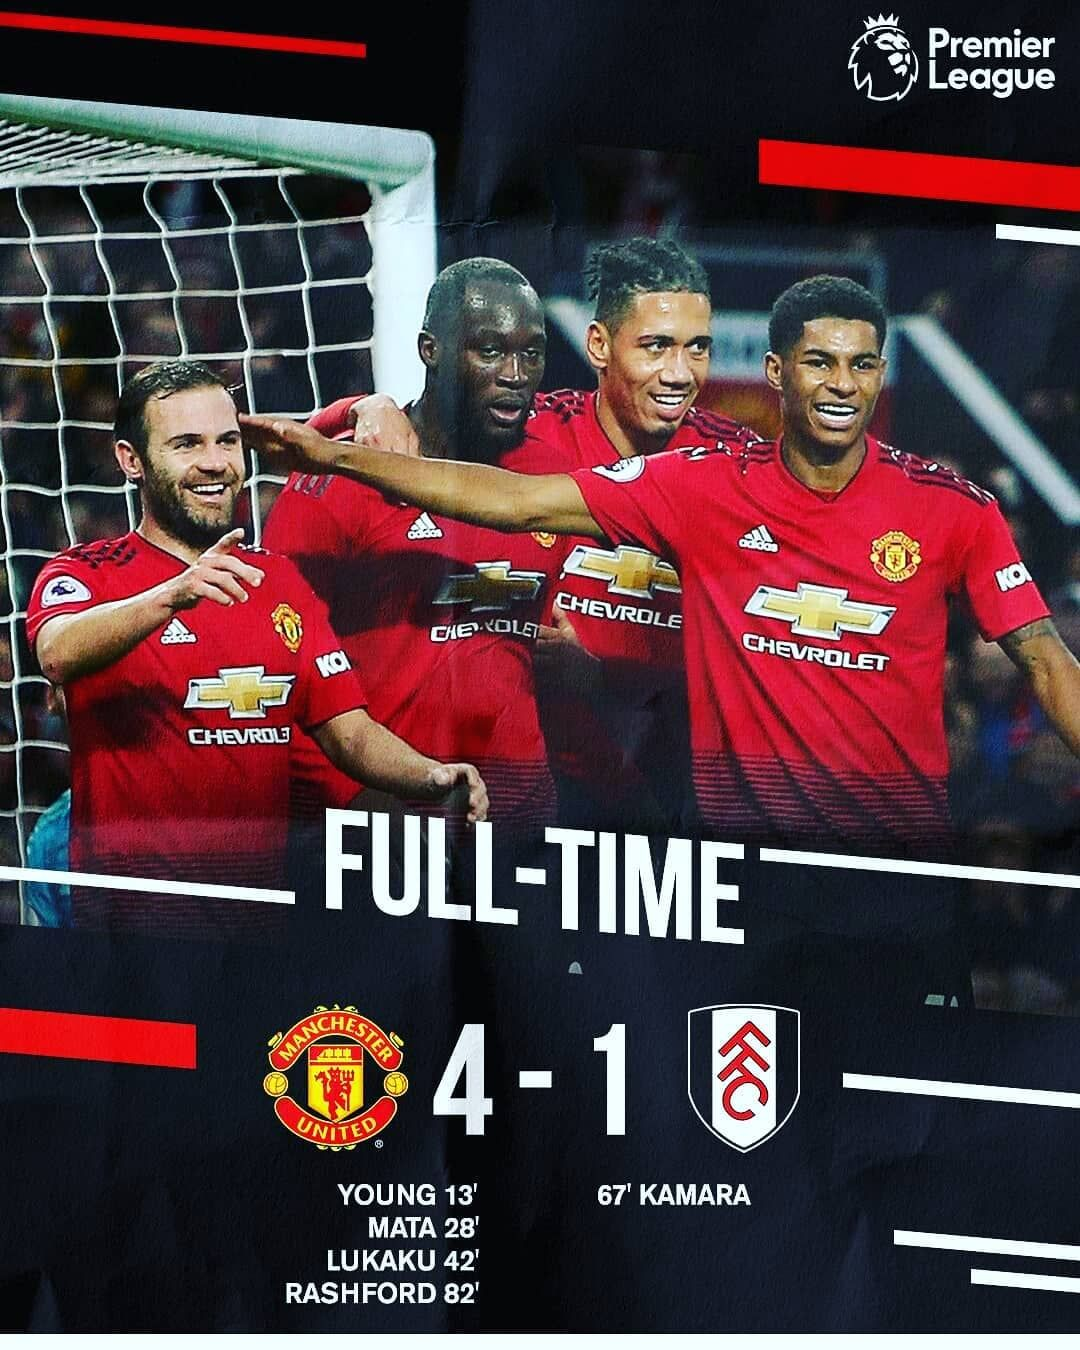 Finally We Did It A Big Win For The Team Congrats Lads Well Done Manchester United Jesse Lingard Manchester